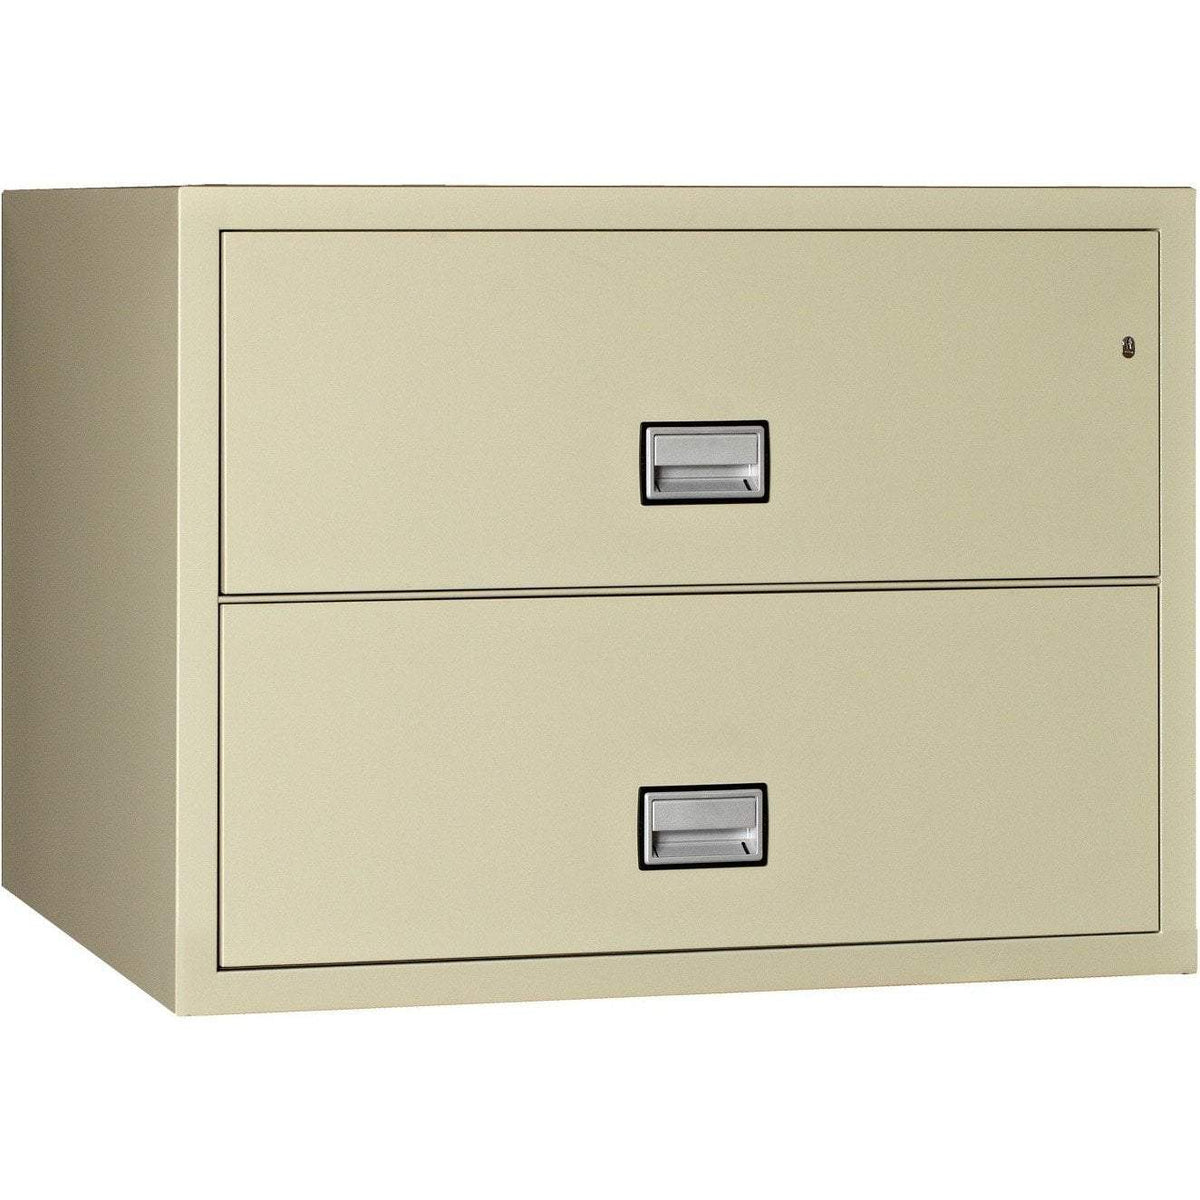 Phoenix LAT2W38 Lateral 38 inch 2-Drawer Fireproof File Cabinet Armadillo Safe and Vault